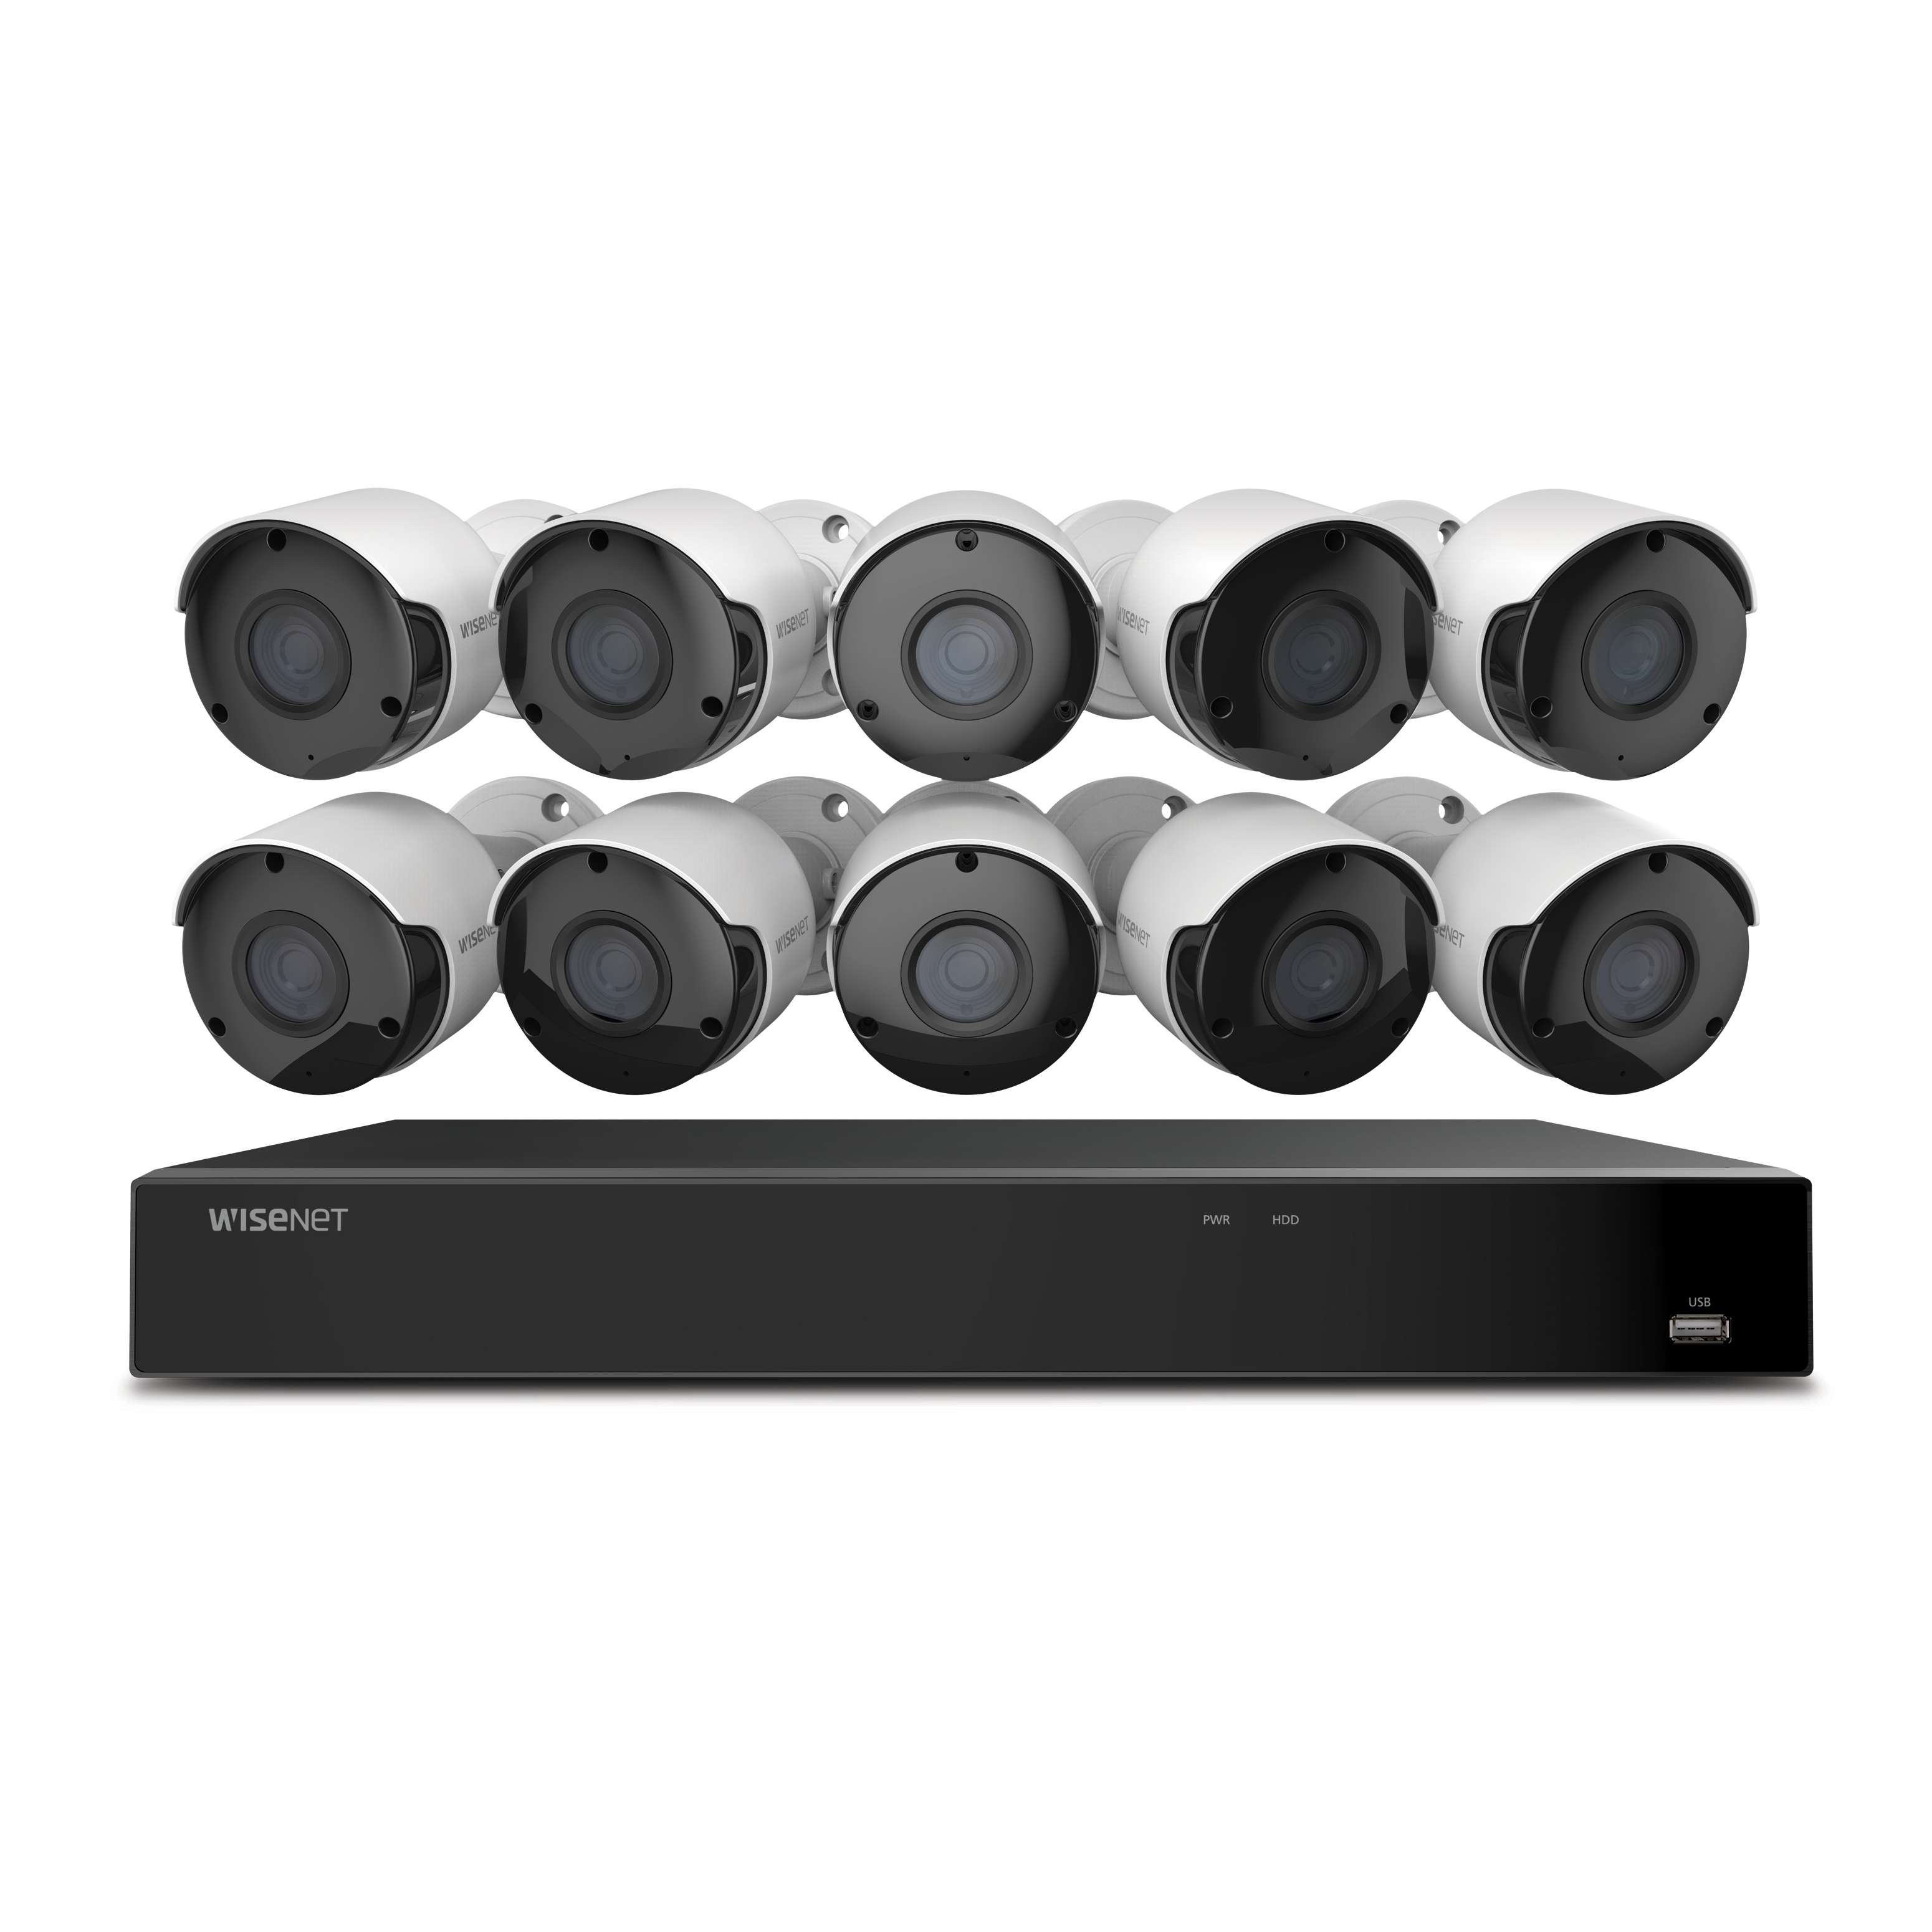 SDH-C85105BF Wisenet 5MP, 16 Channel Security Camera System with 10 Cameras